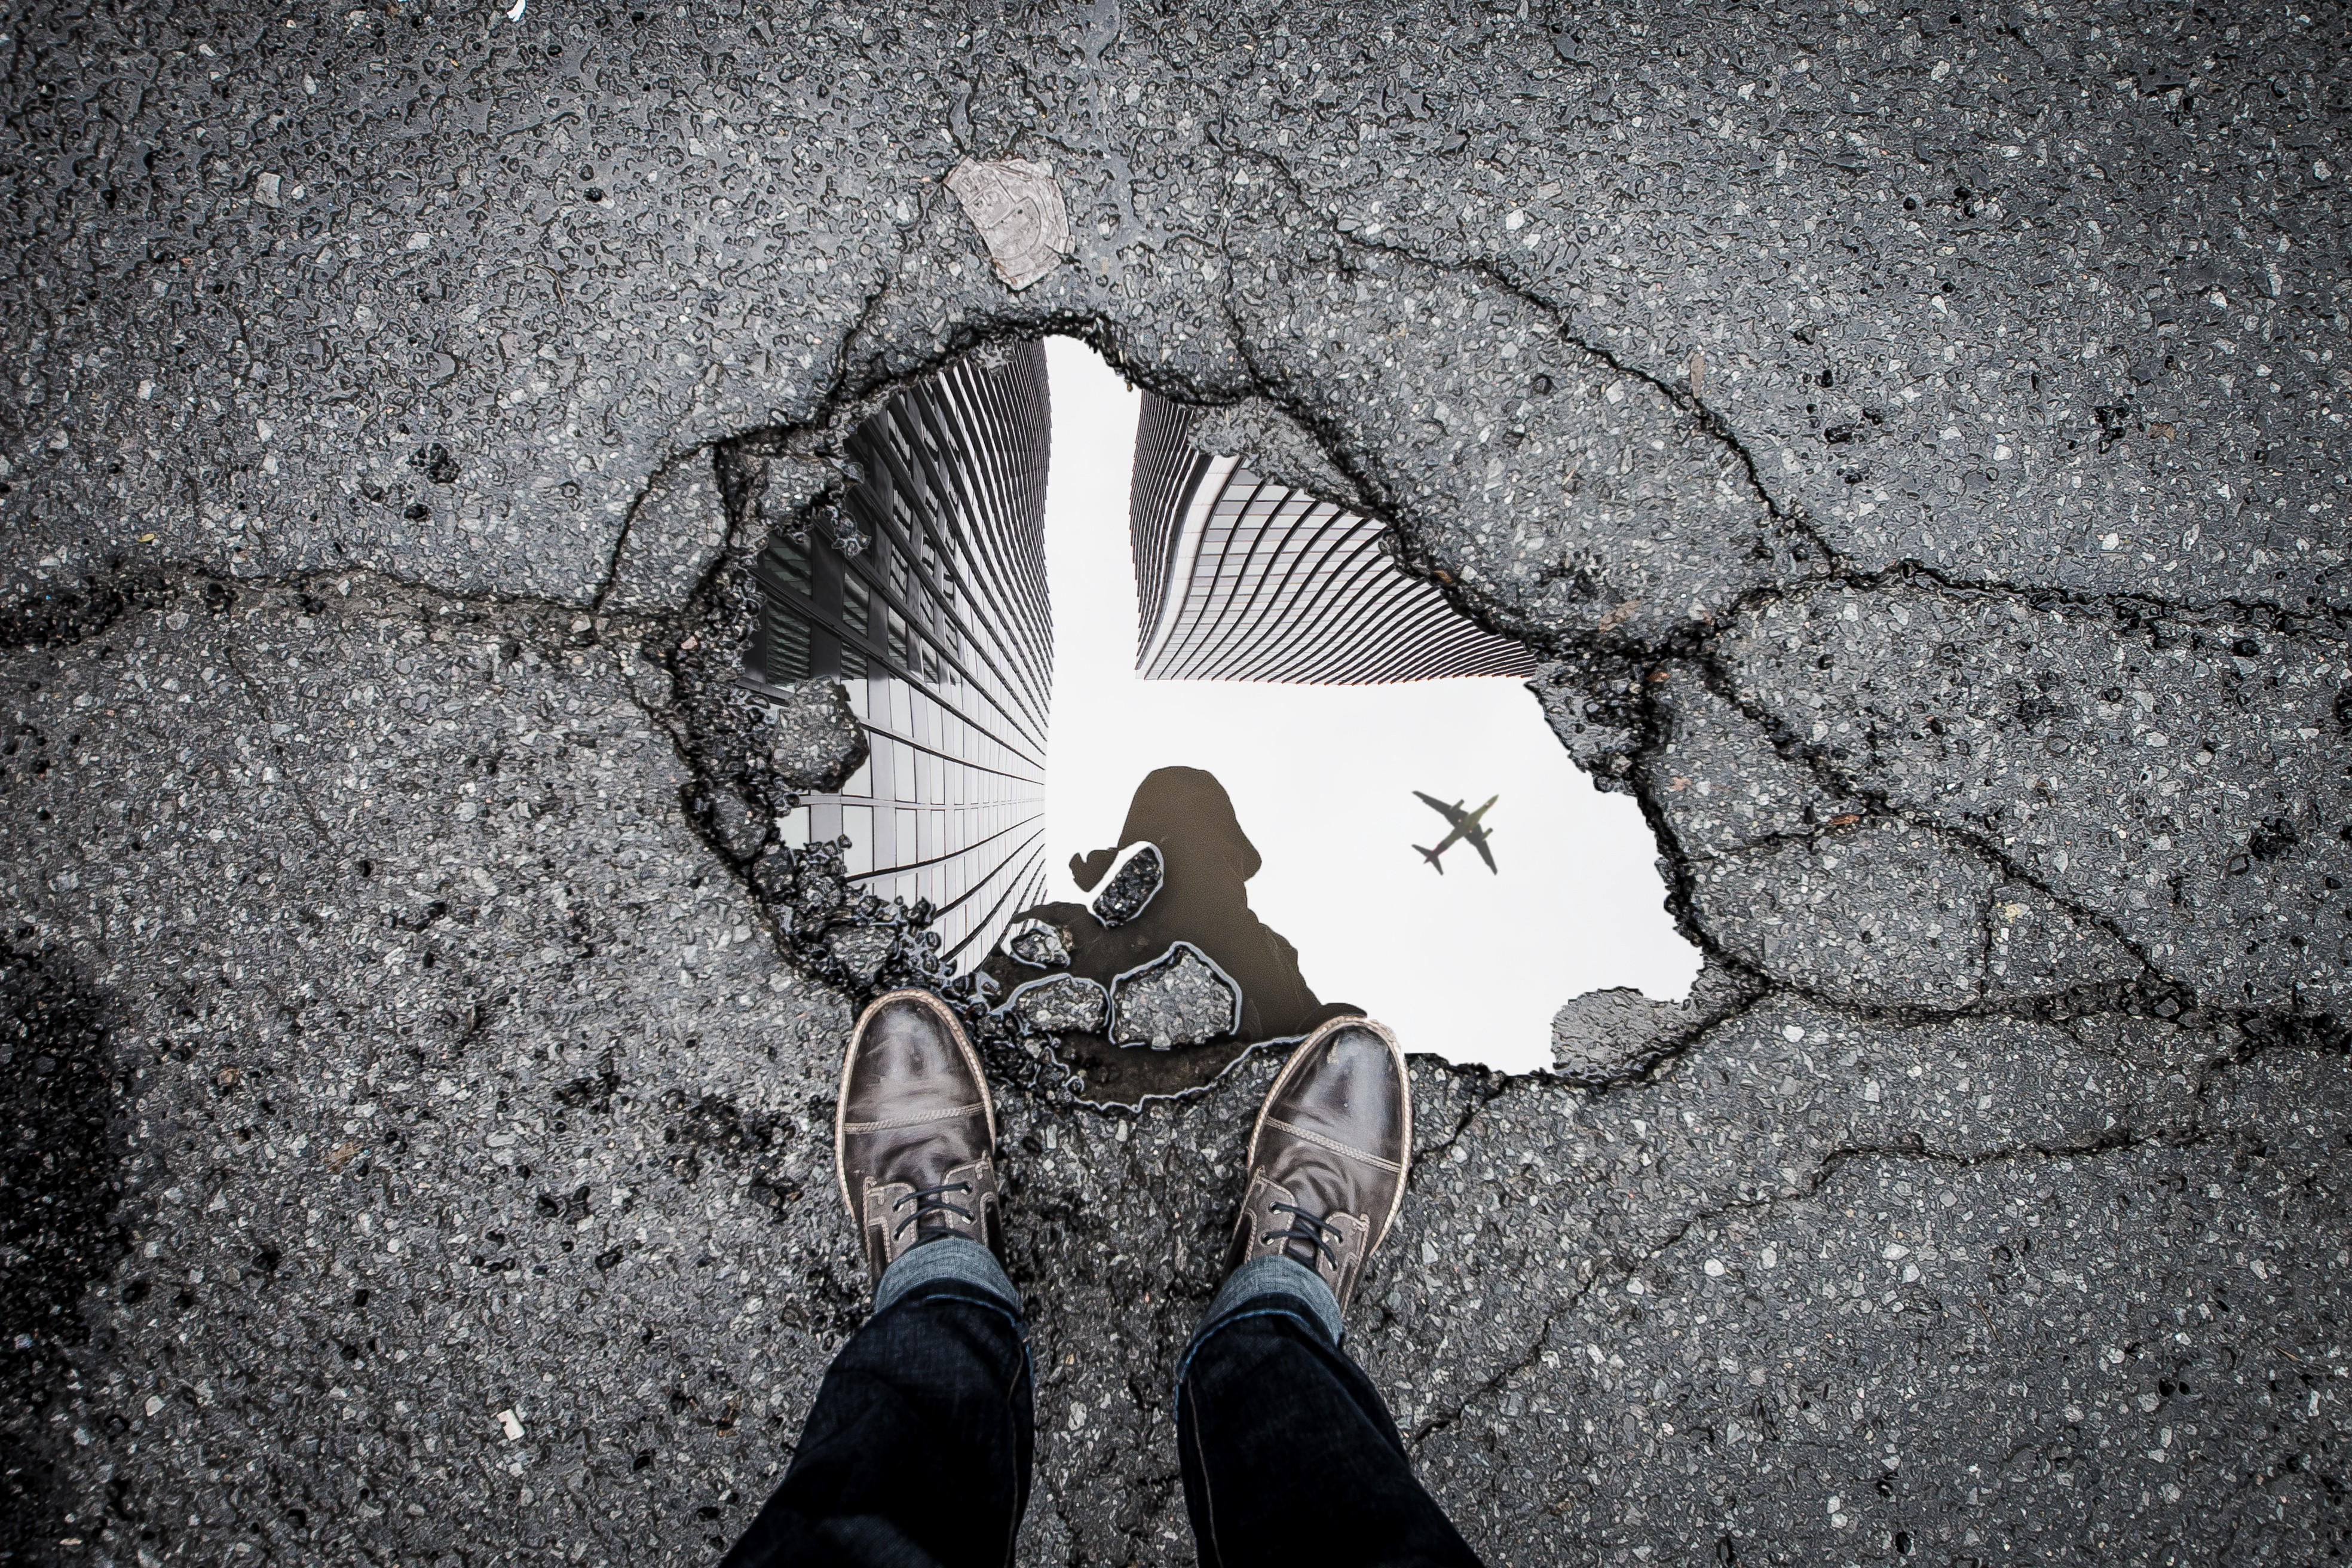 A photo of a puddle with the photographer, tall buildings, and a plane reflected therein